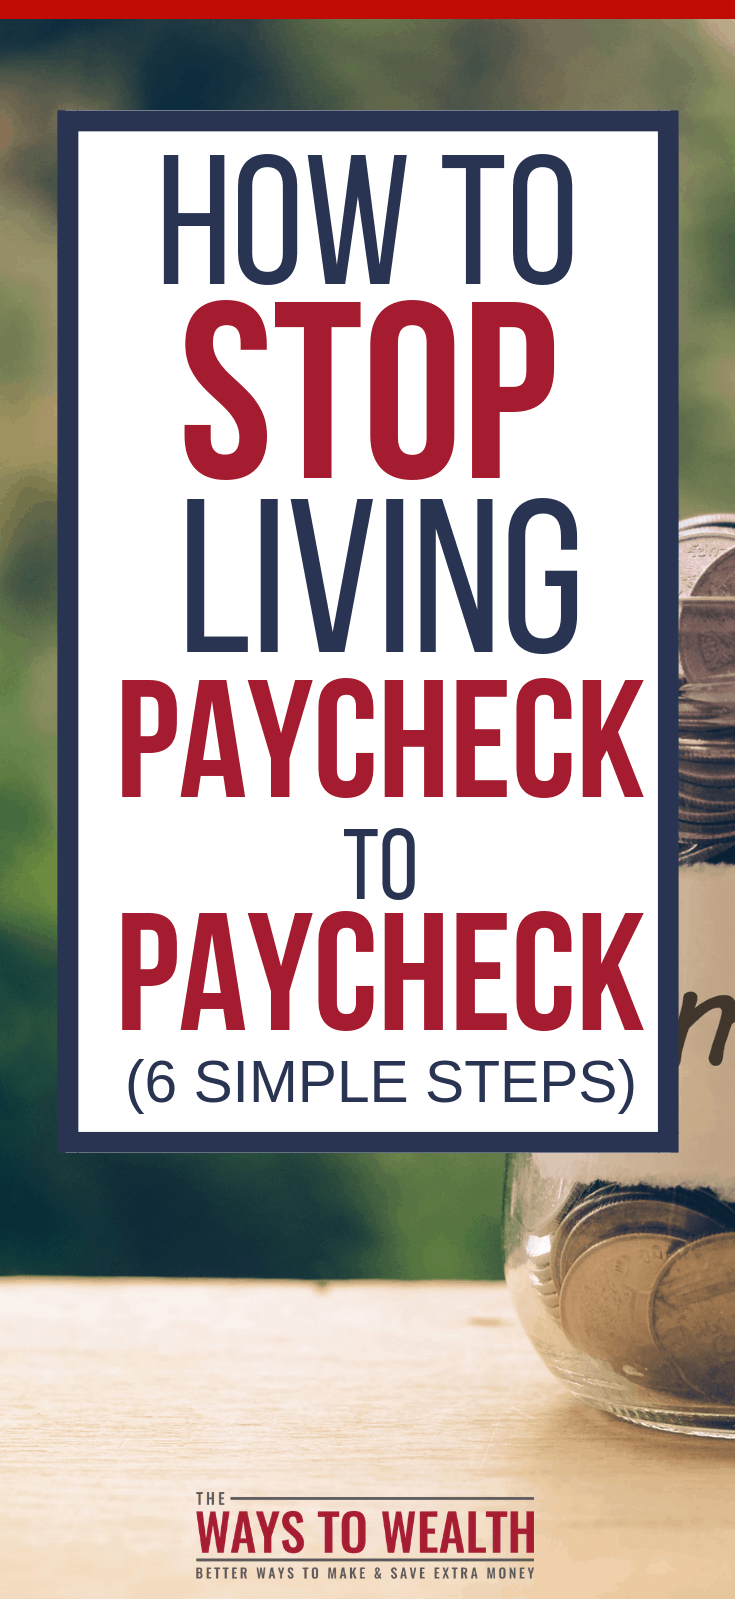 How To Save $1,000 When You're Living Paycheck to Paycheckpaycheck to paycheck budget tips | save 1000 fast | baby step 1 |#thewaystowealth #debt #debtfree #savemoney